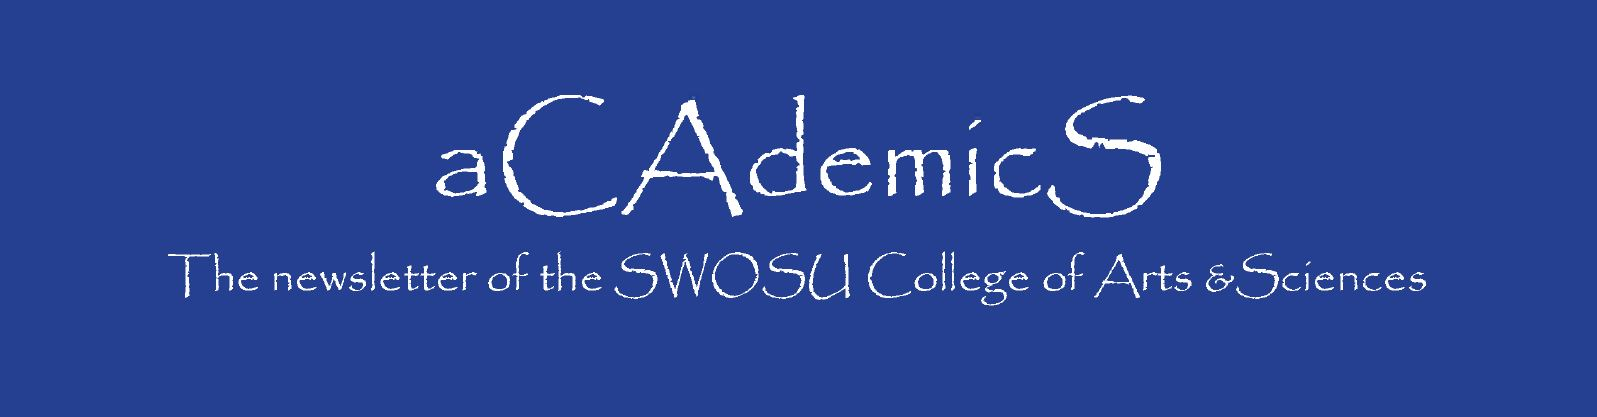 aCAdemicS: The Newsletter of the SWOSU College of Arts & Sciences